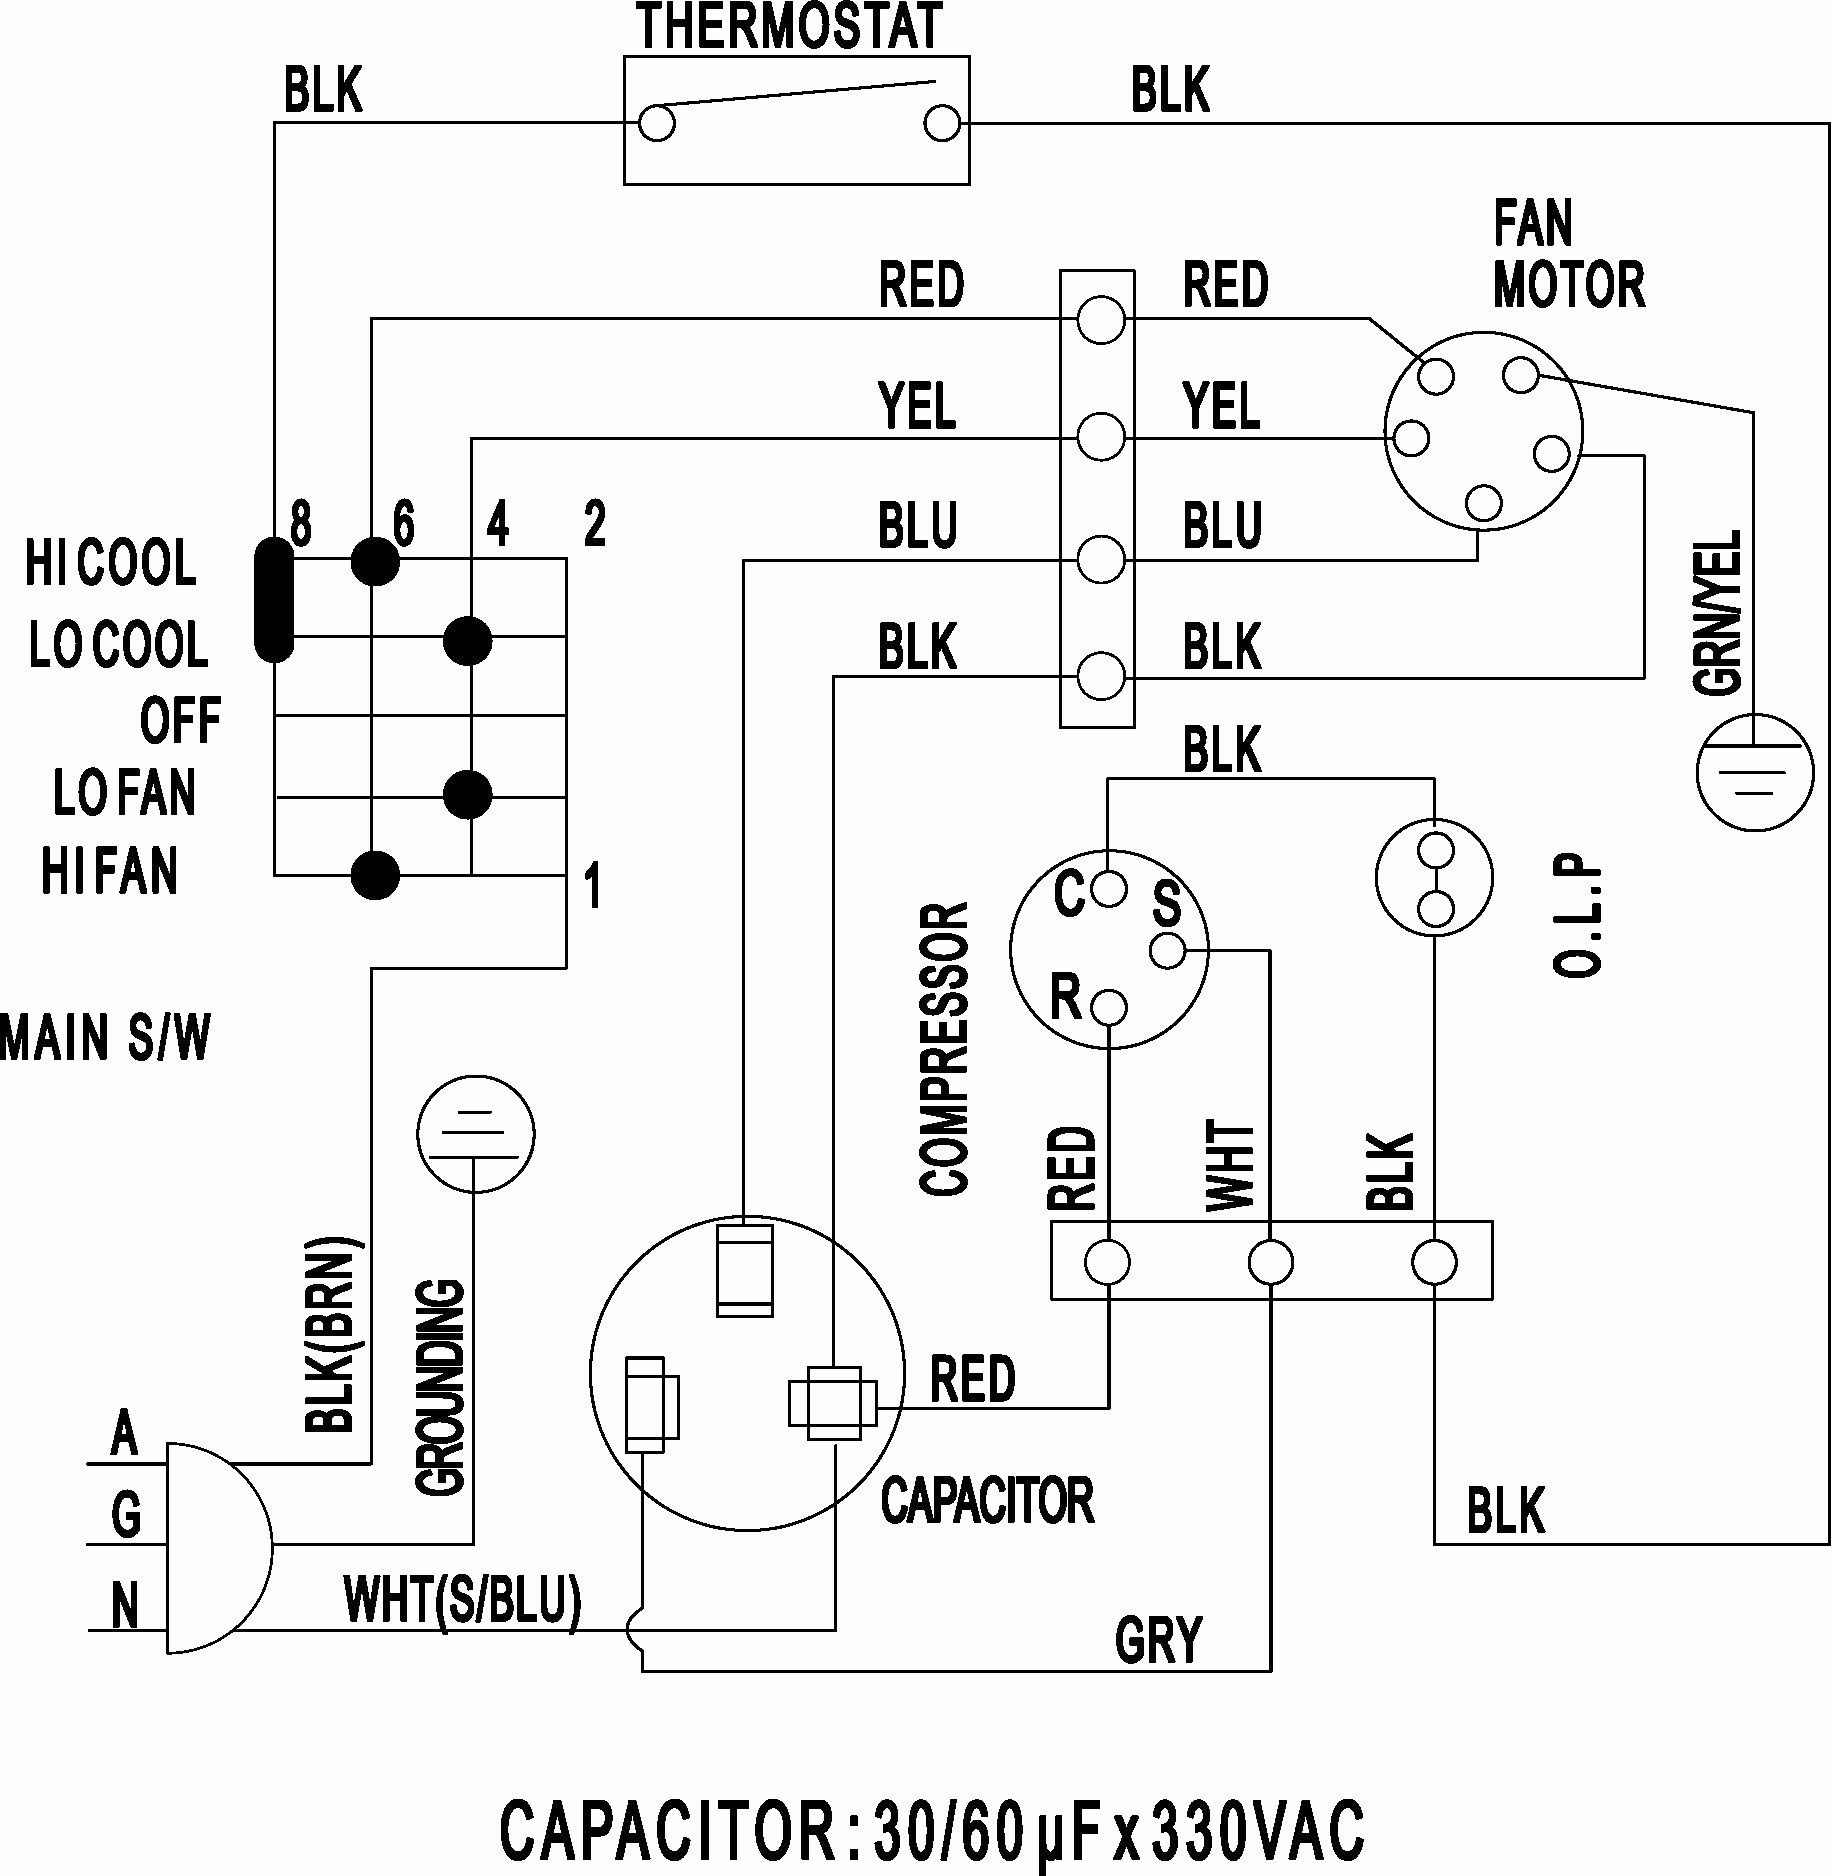 hight resolution of ac compressor wiring diagram wiring diagram database air compressor motor wiring schematic compressor wiring schematic